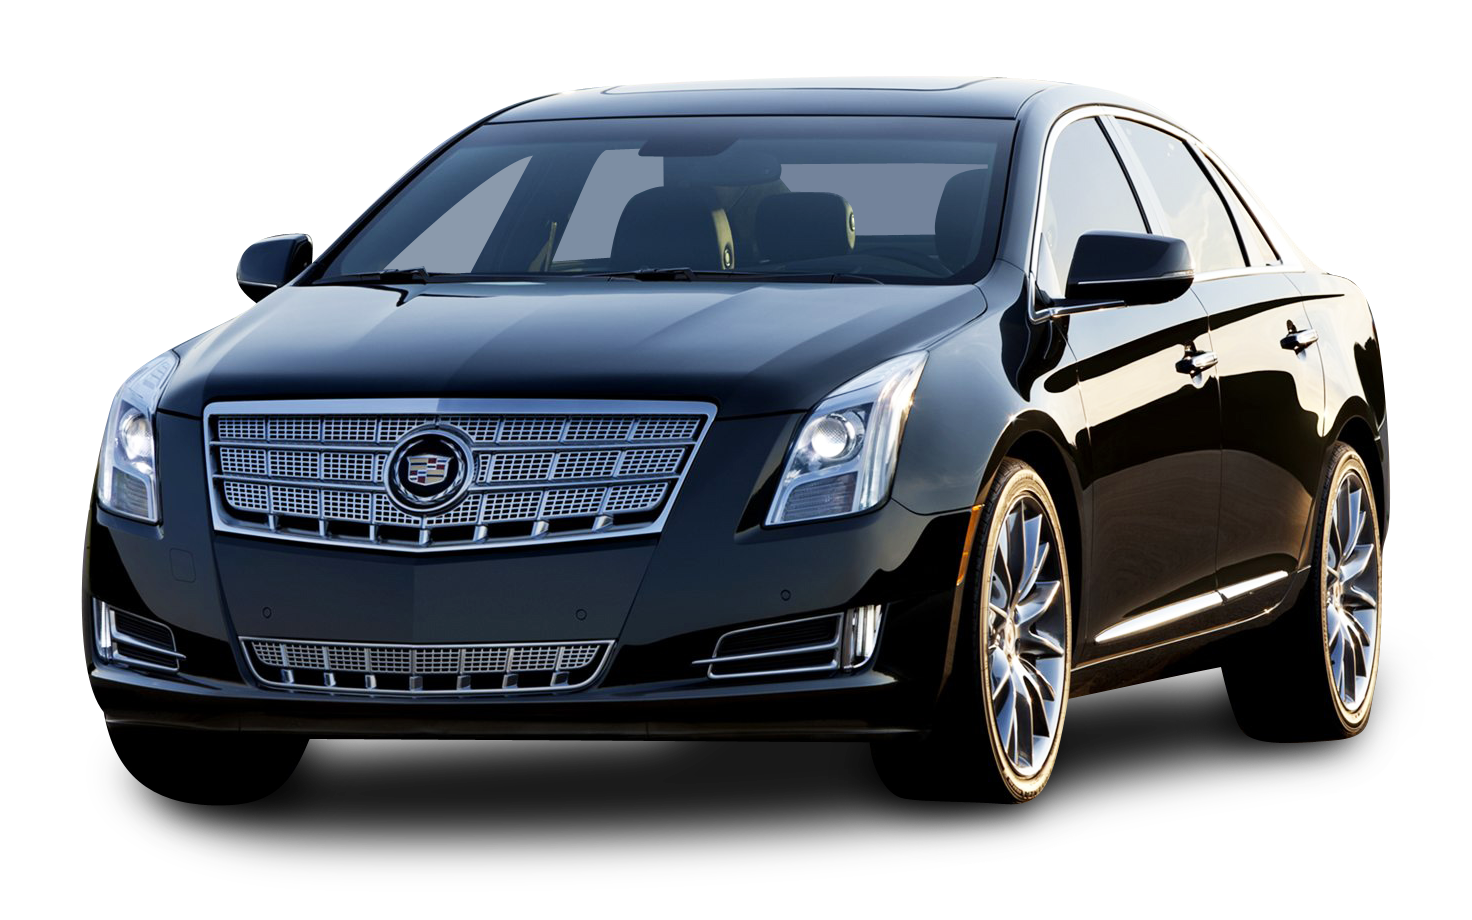 Black Cadillac Car